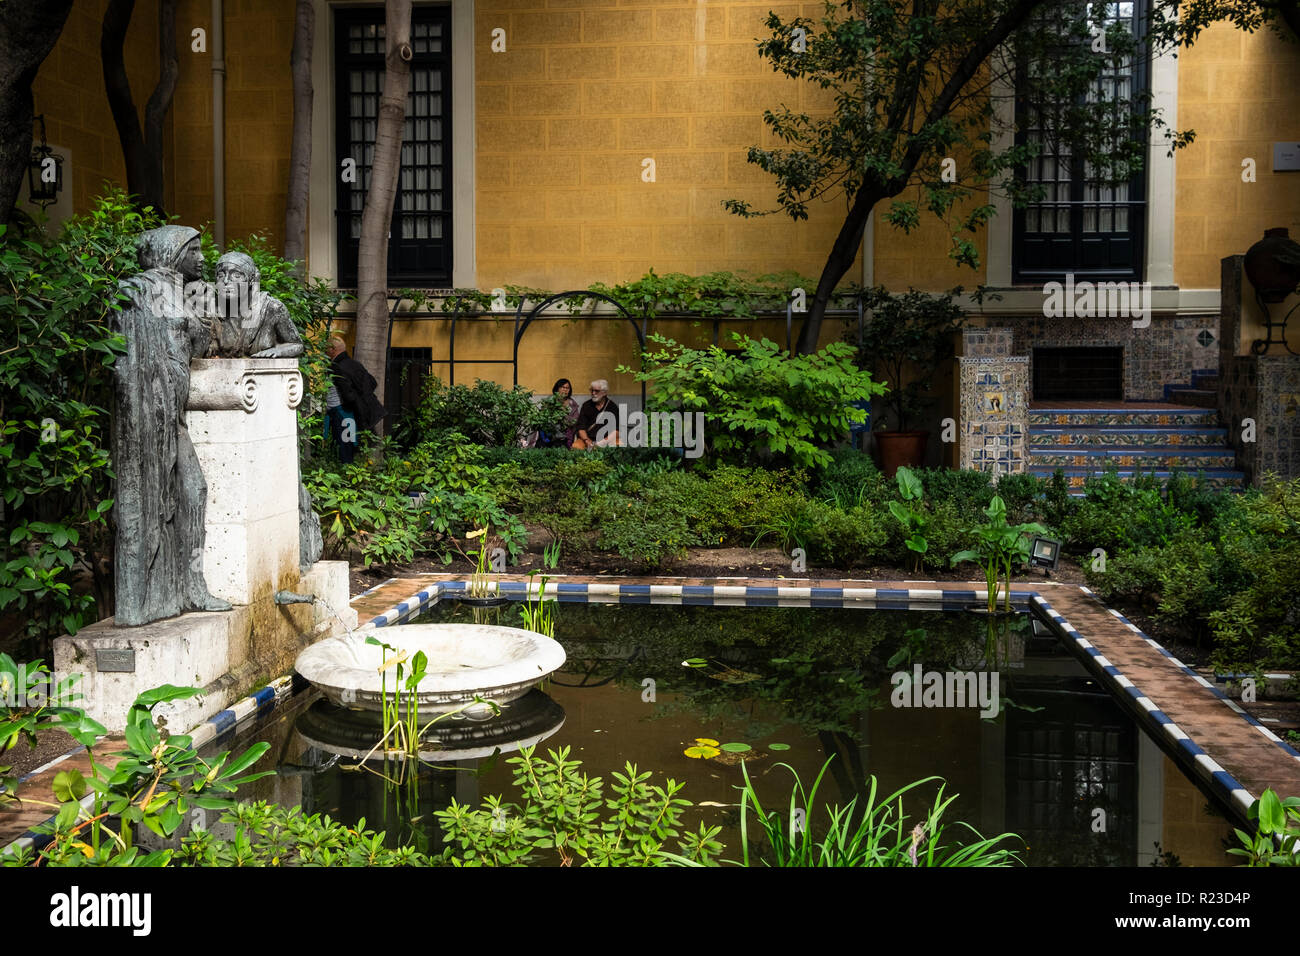 Museo Sorolla Madrid.Garden Of The Museo Sorolla Sorolla Museum Artists House Garden